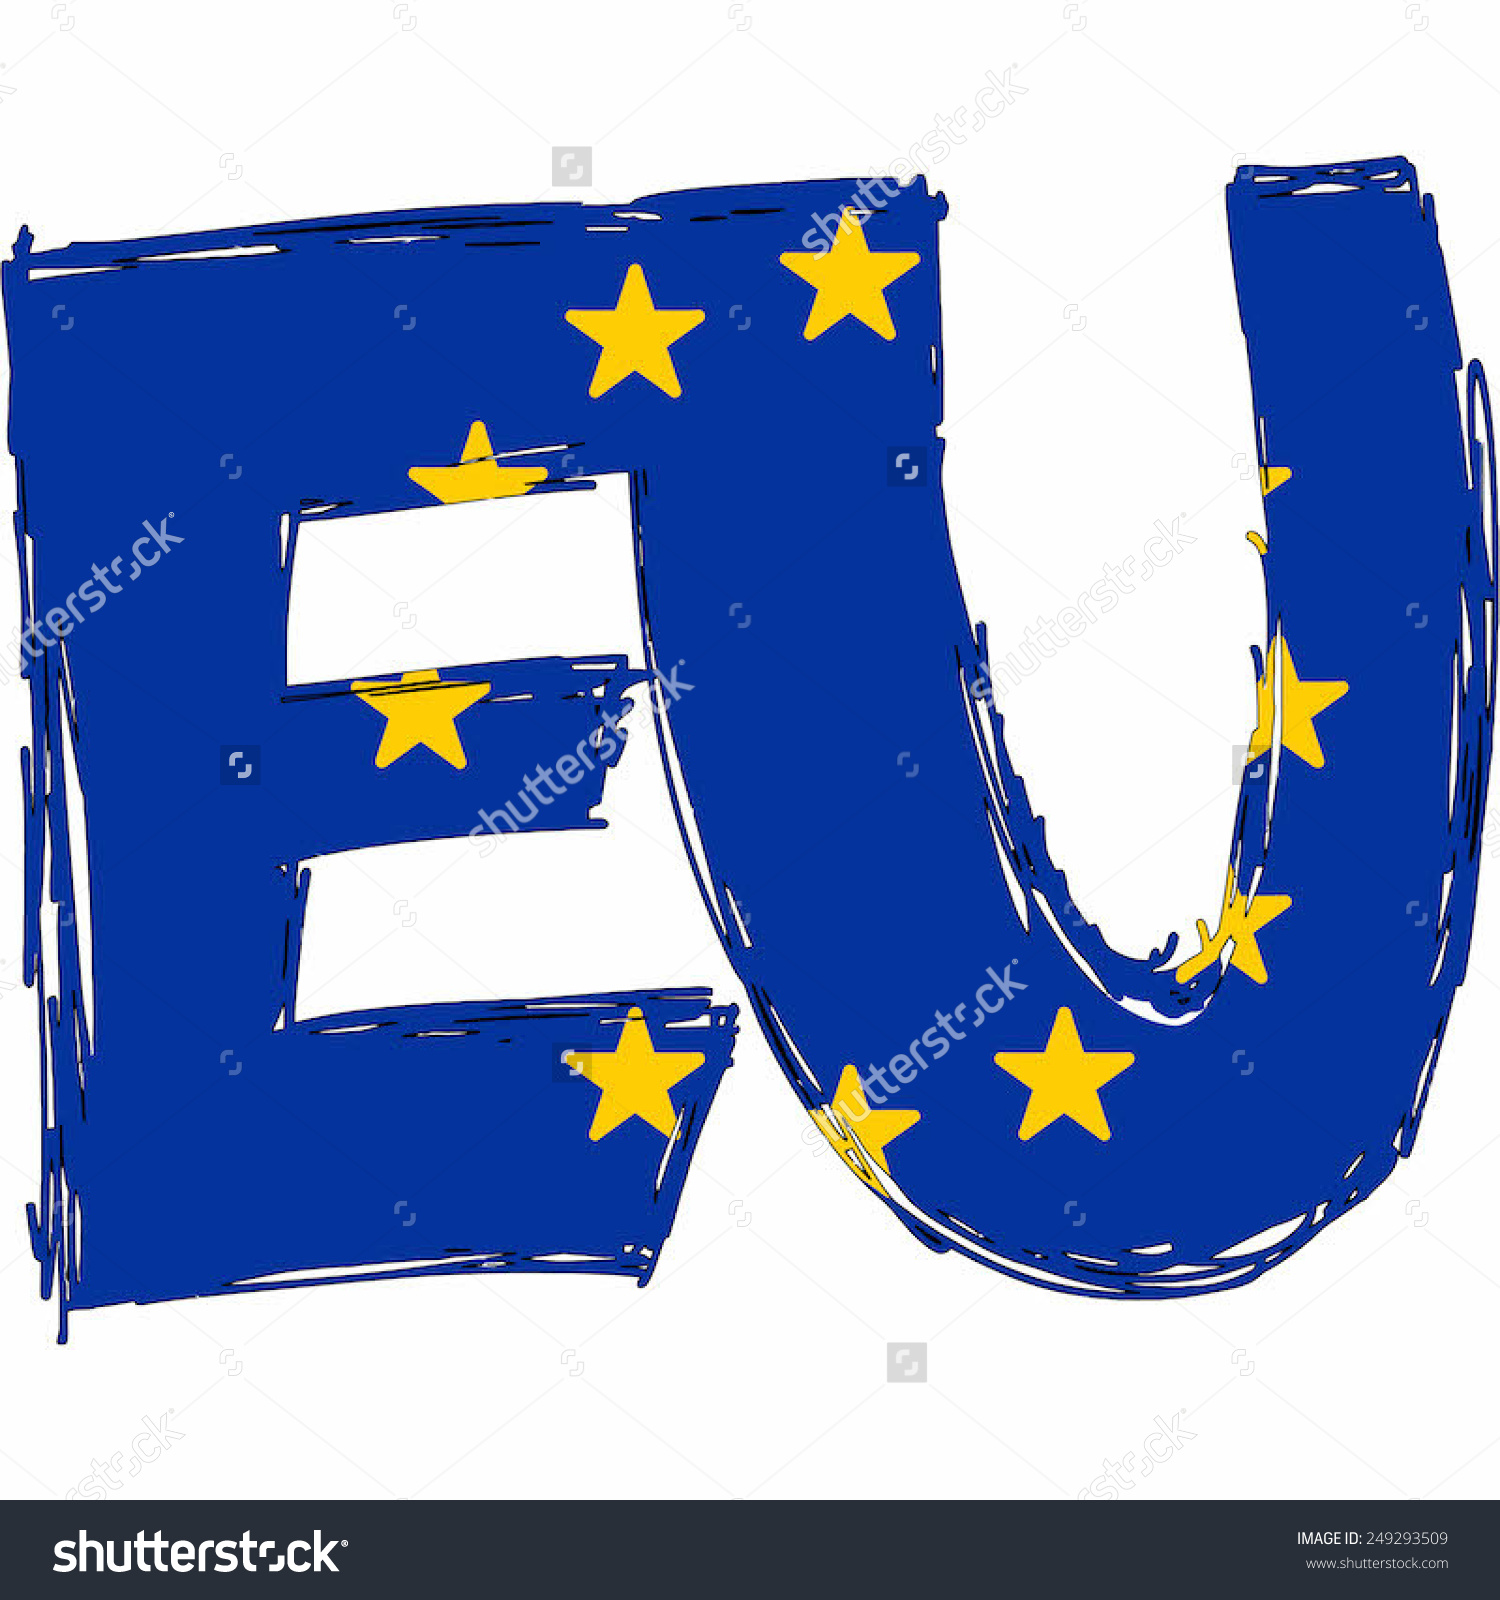 Eu clipart 20 free Cliparts | Download images on ...